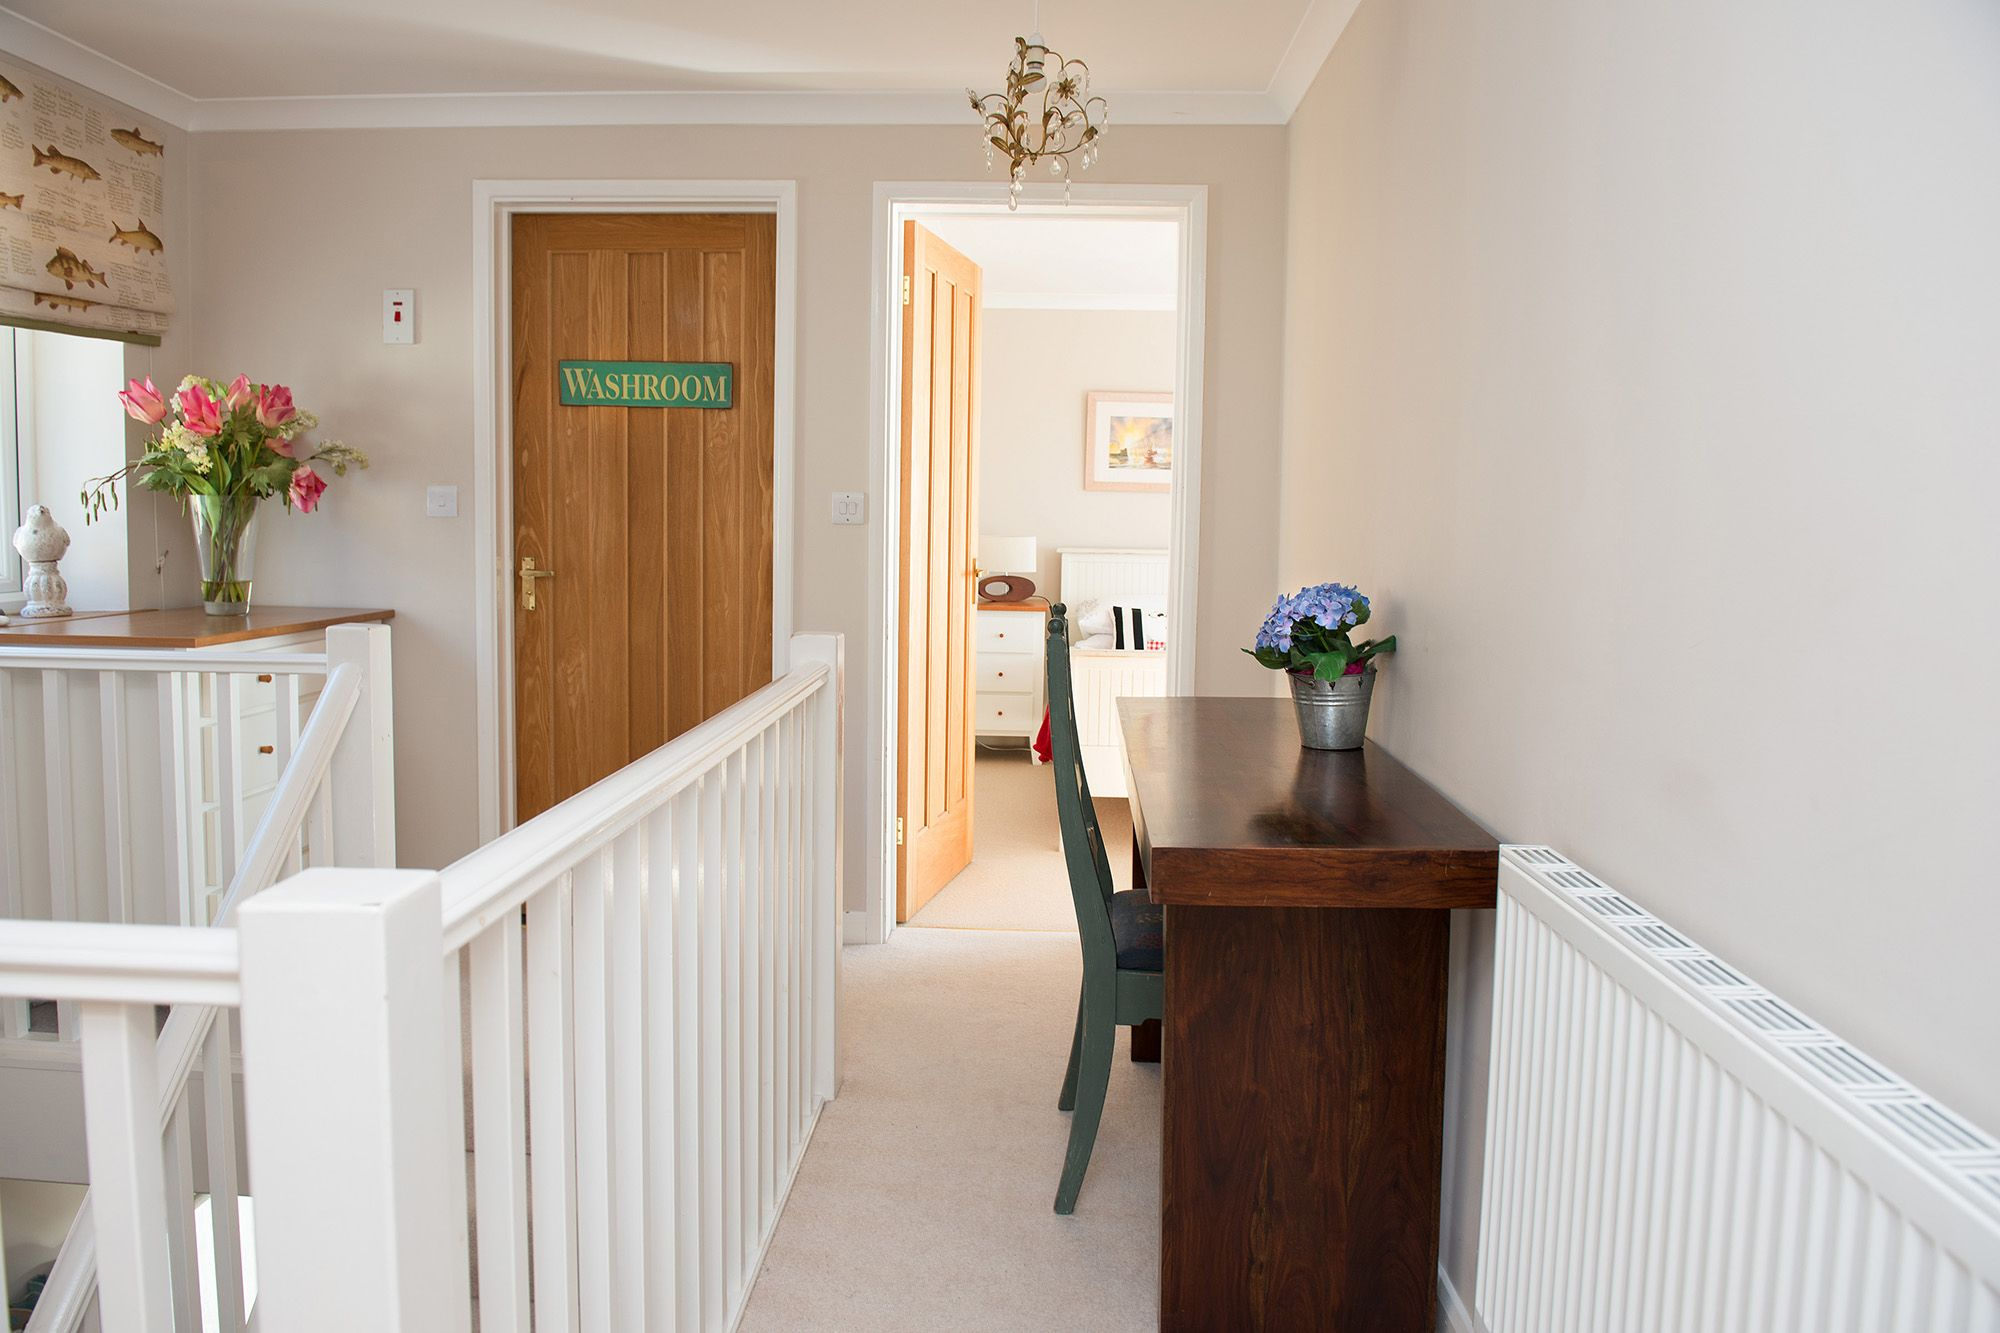 First floor: Landing with entrance to the twin bedroom